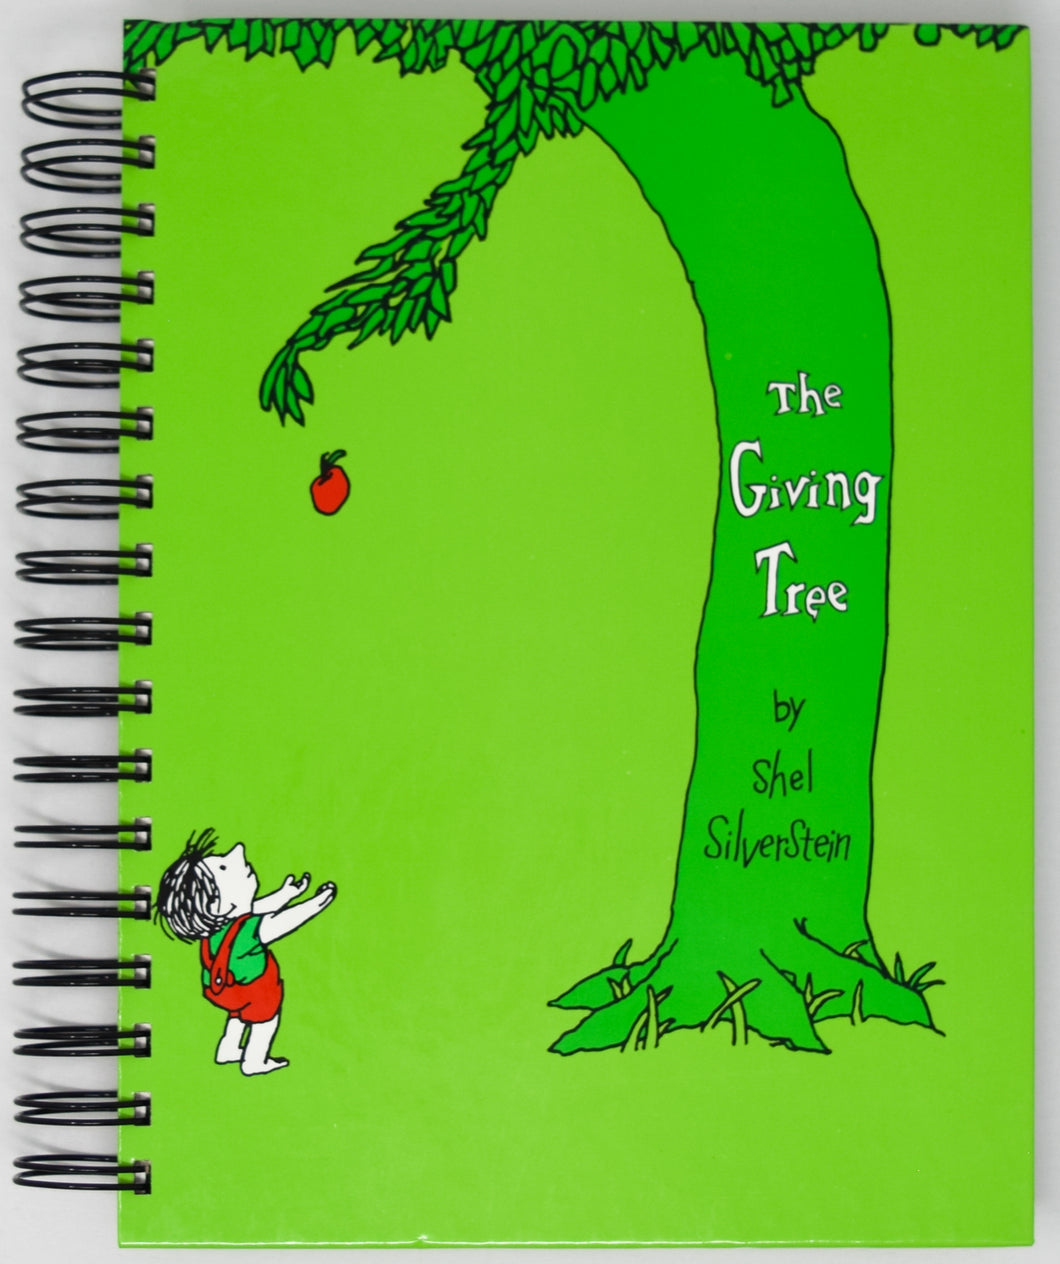 Giving Tree by Shel Silverstein